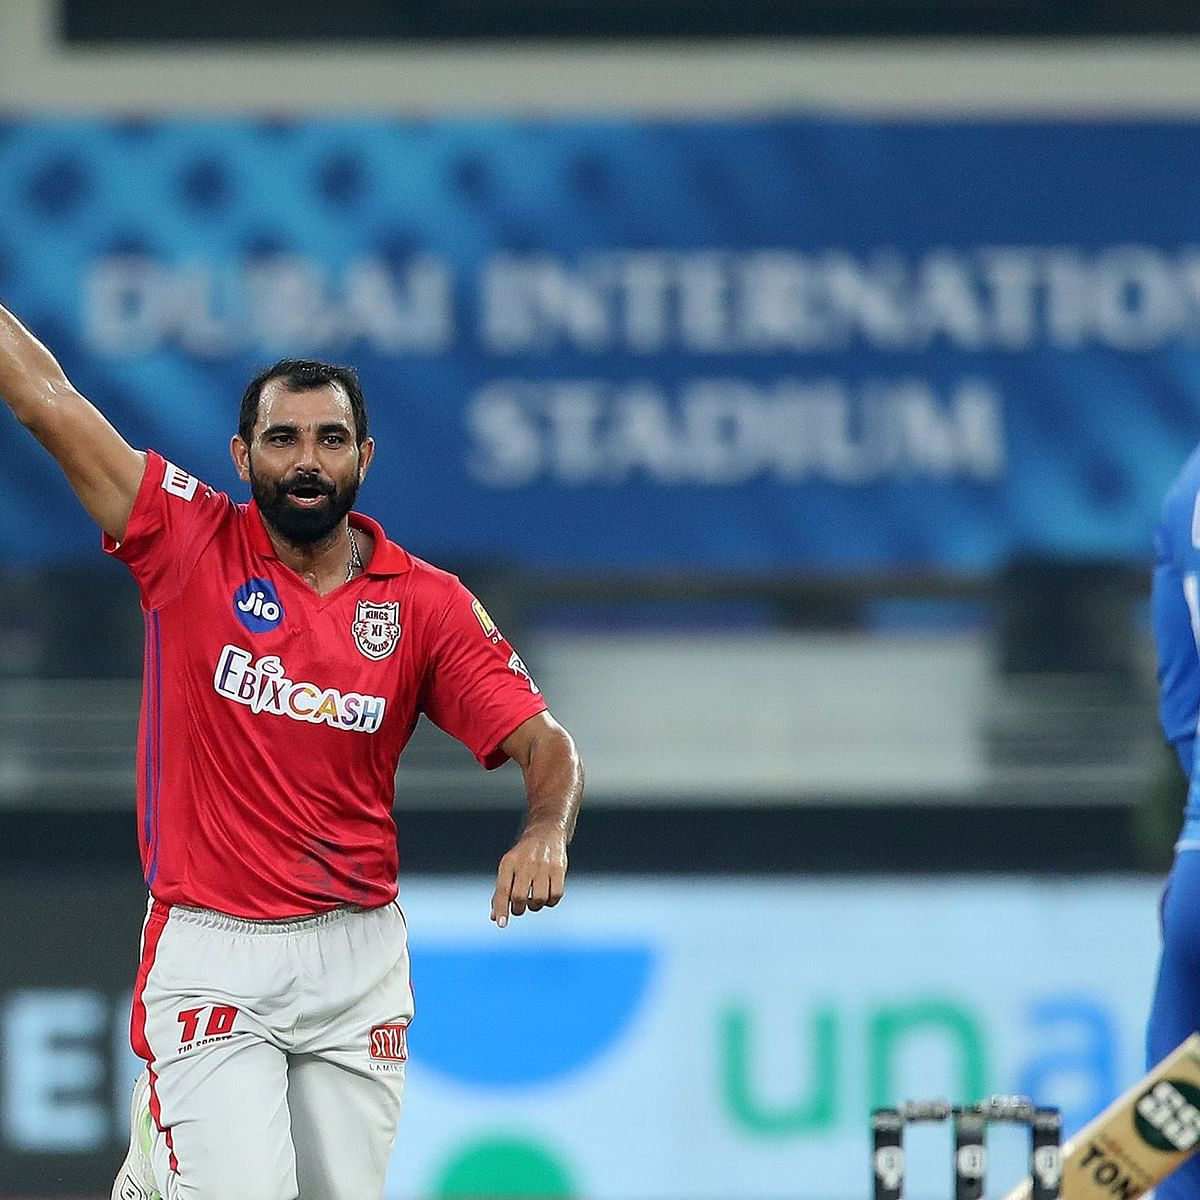 Delhi Capitals vs Kings XI Punjab LIVE: Score, Commentary for the 2nd match of IPL 2020